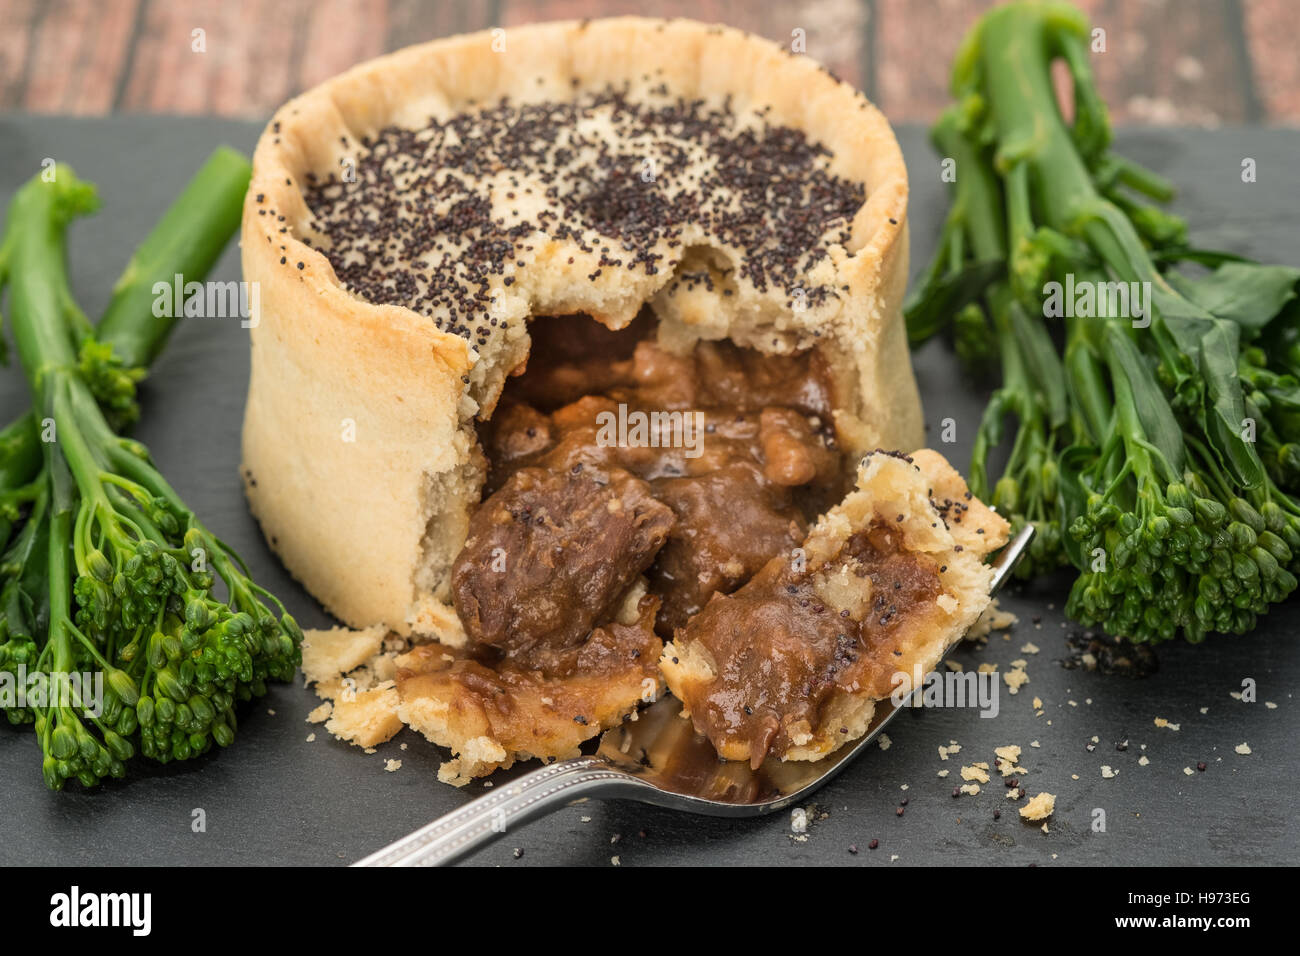 Steak and ale pie with broccoli - Stock Image